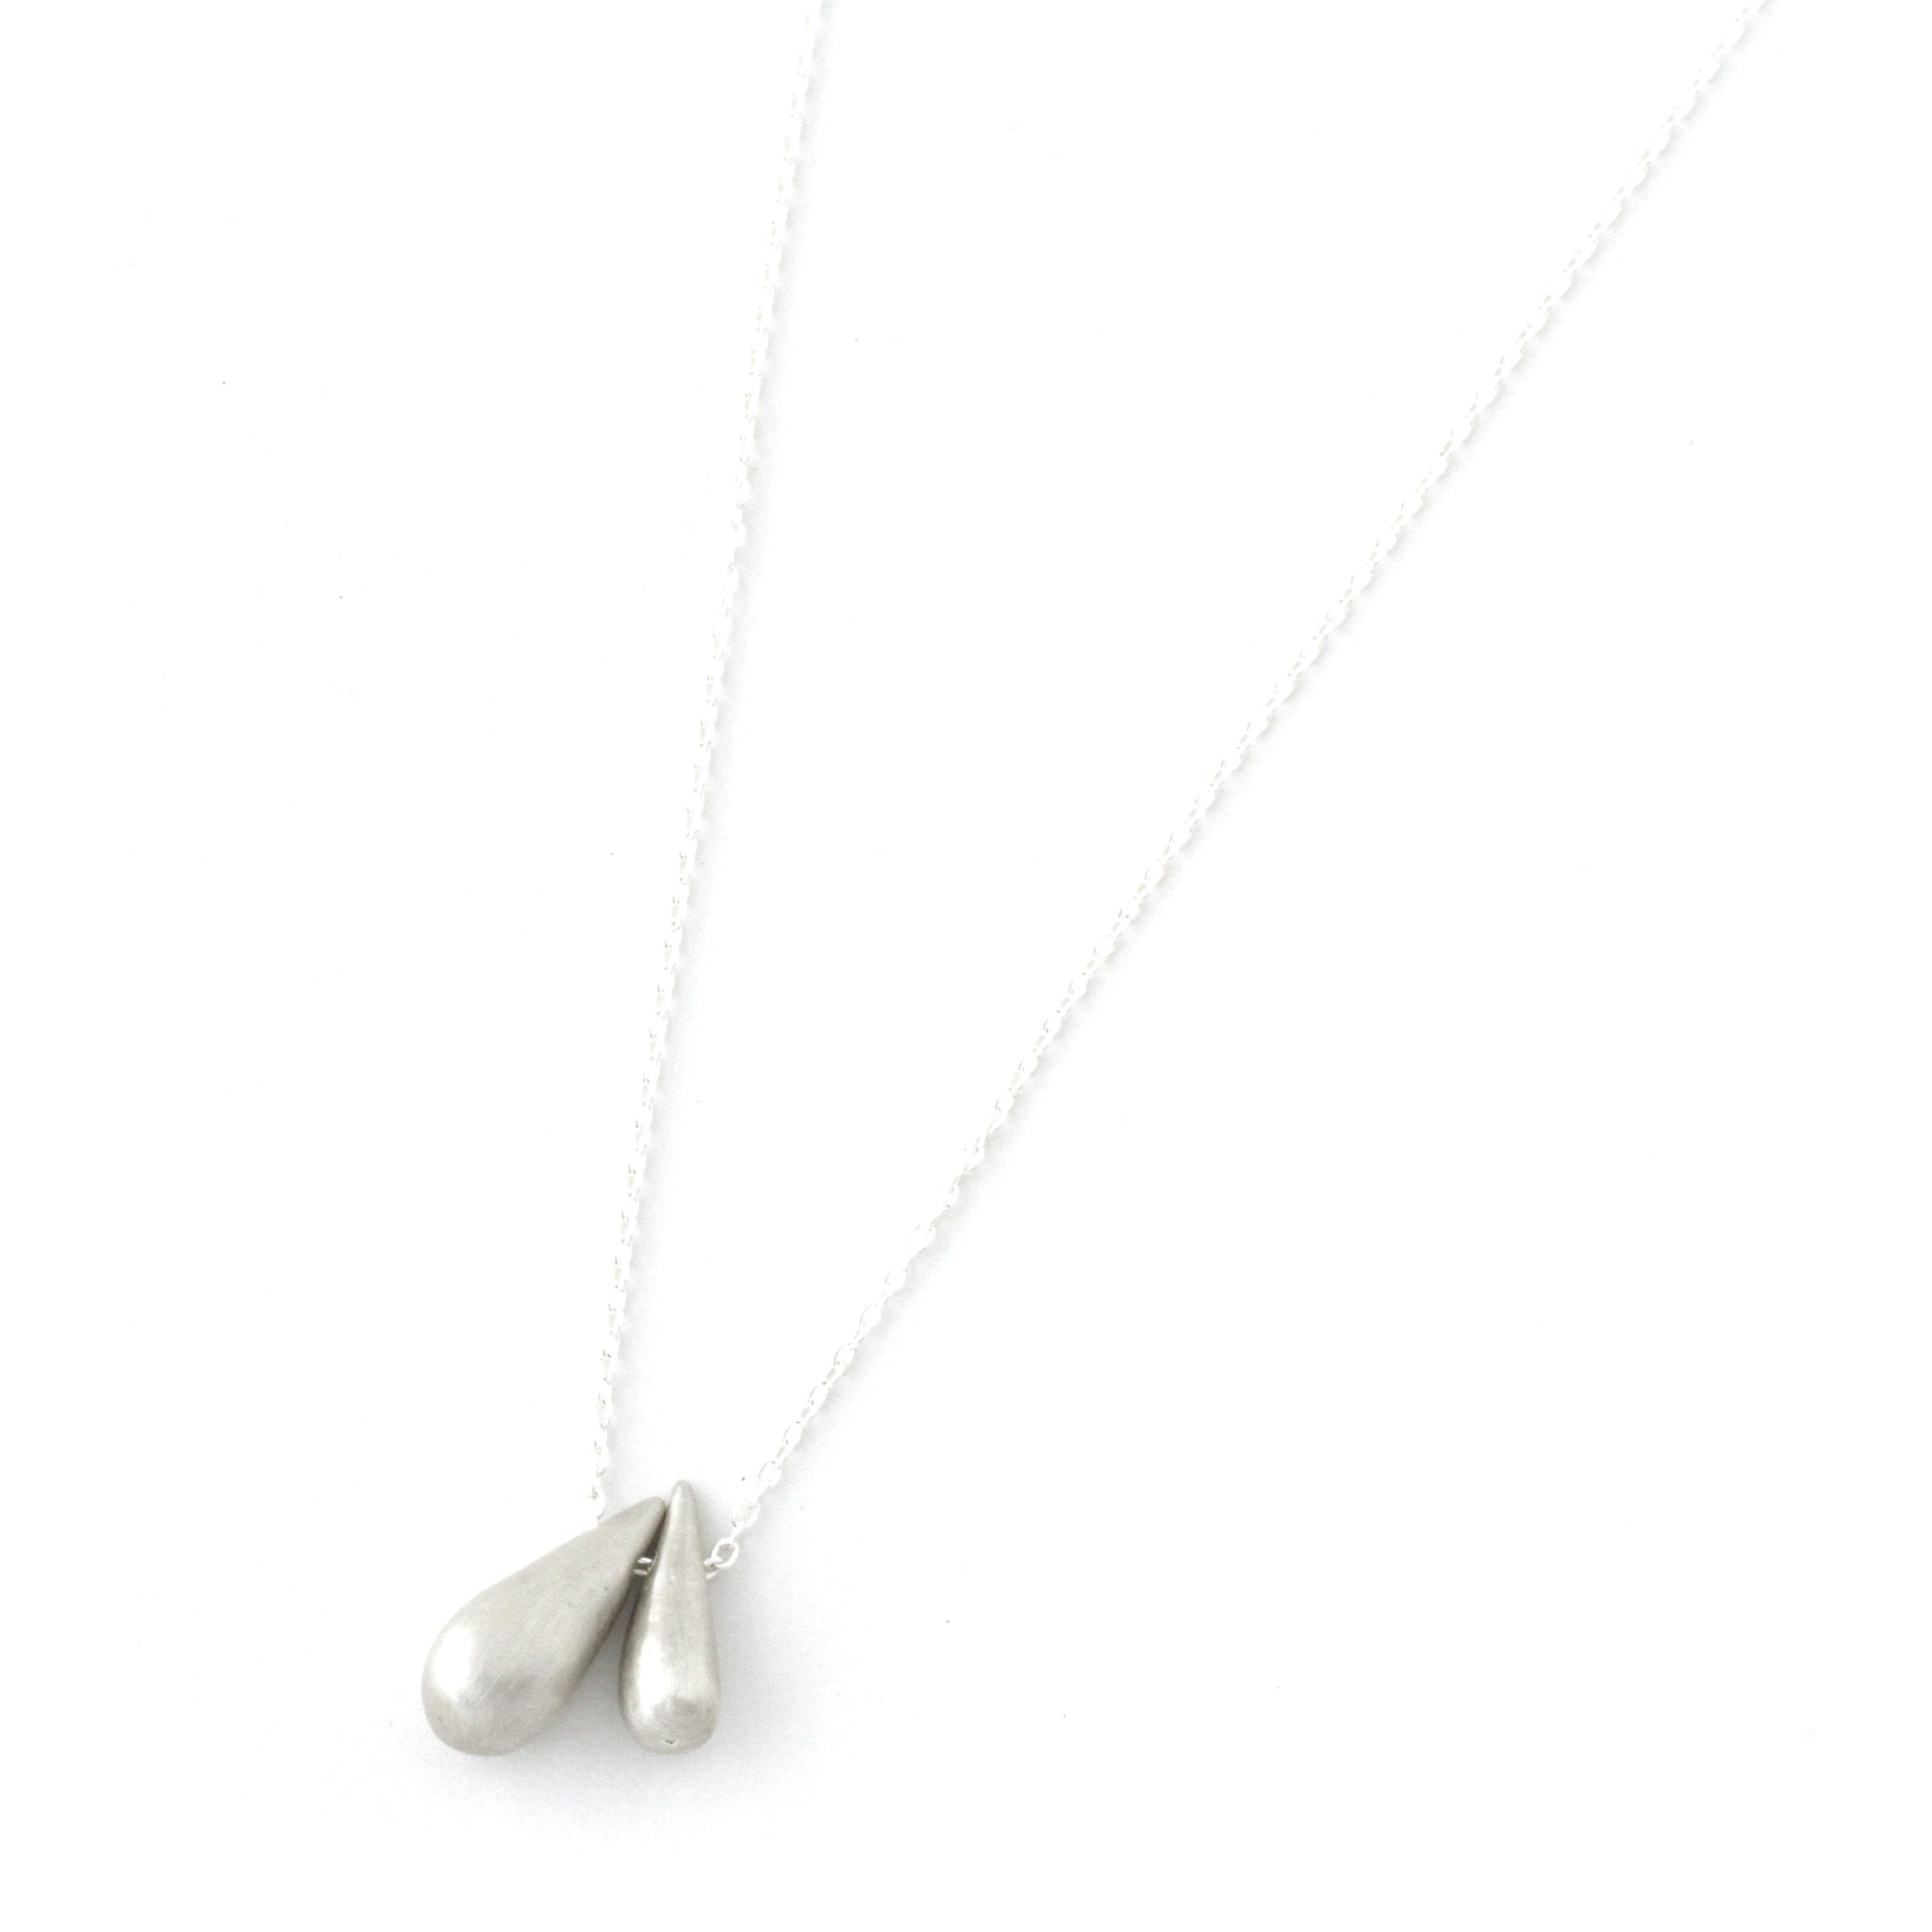 Raindrop Necklace (Double Sterling Silver)